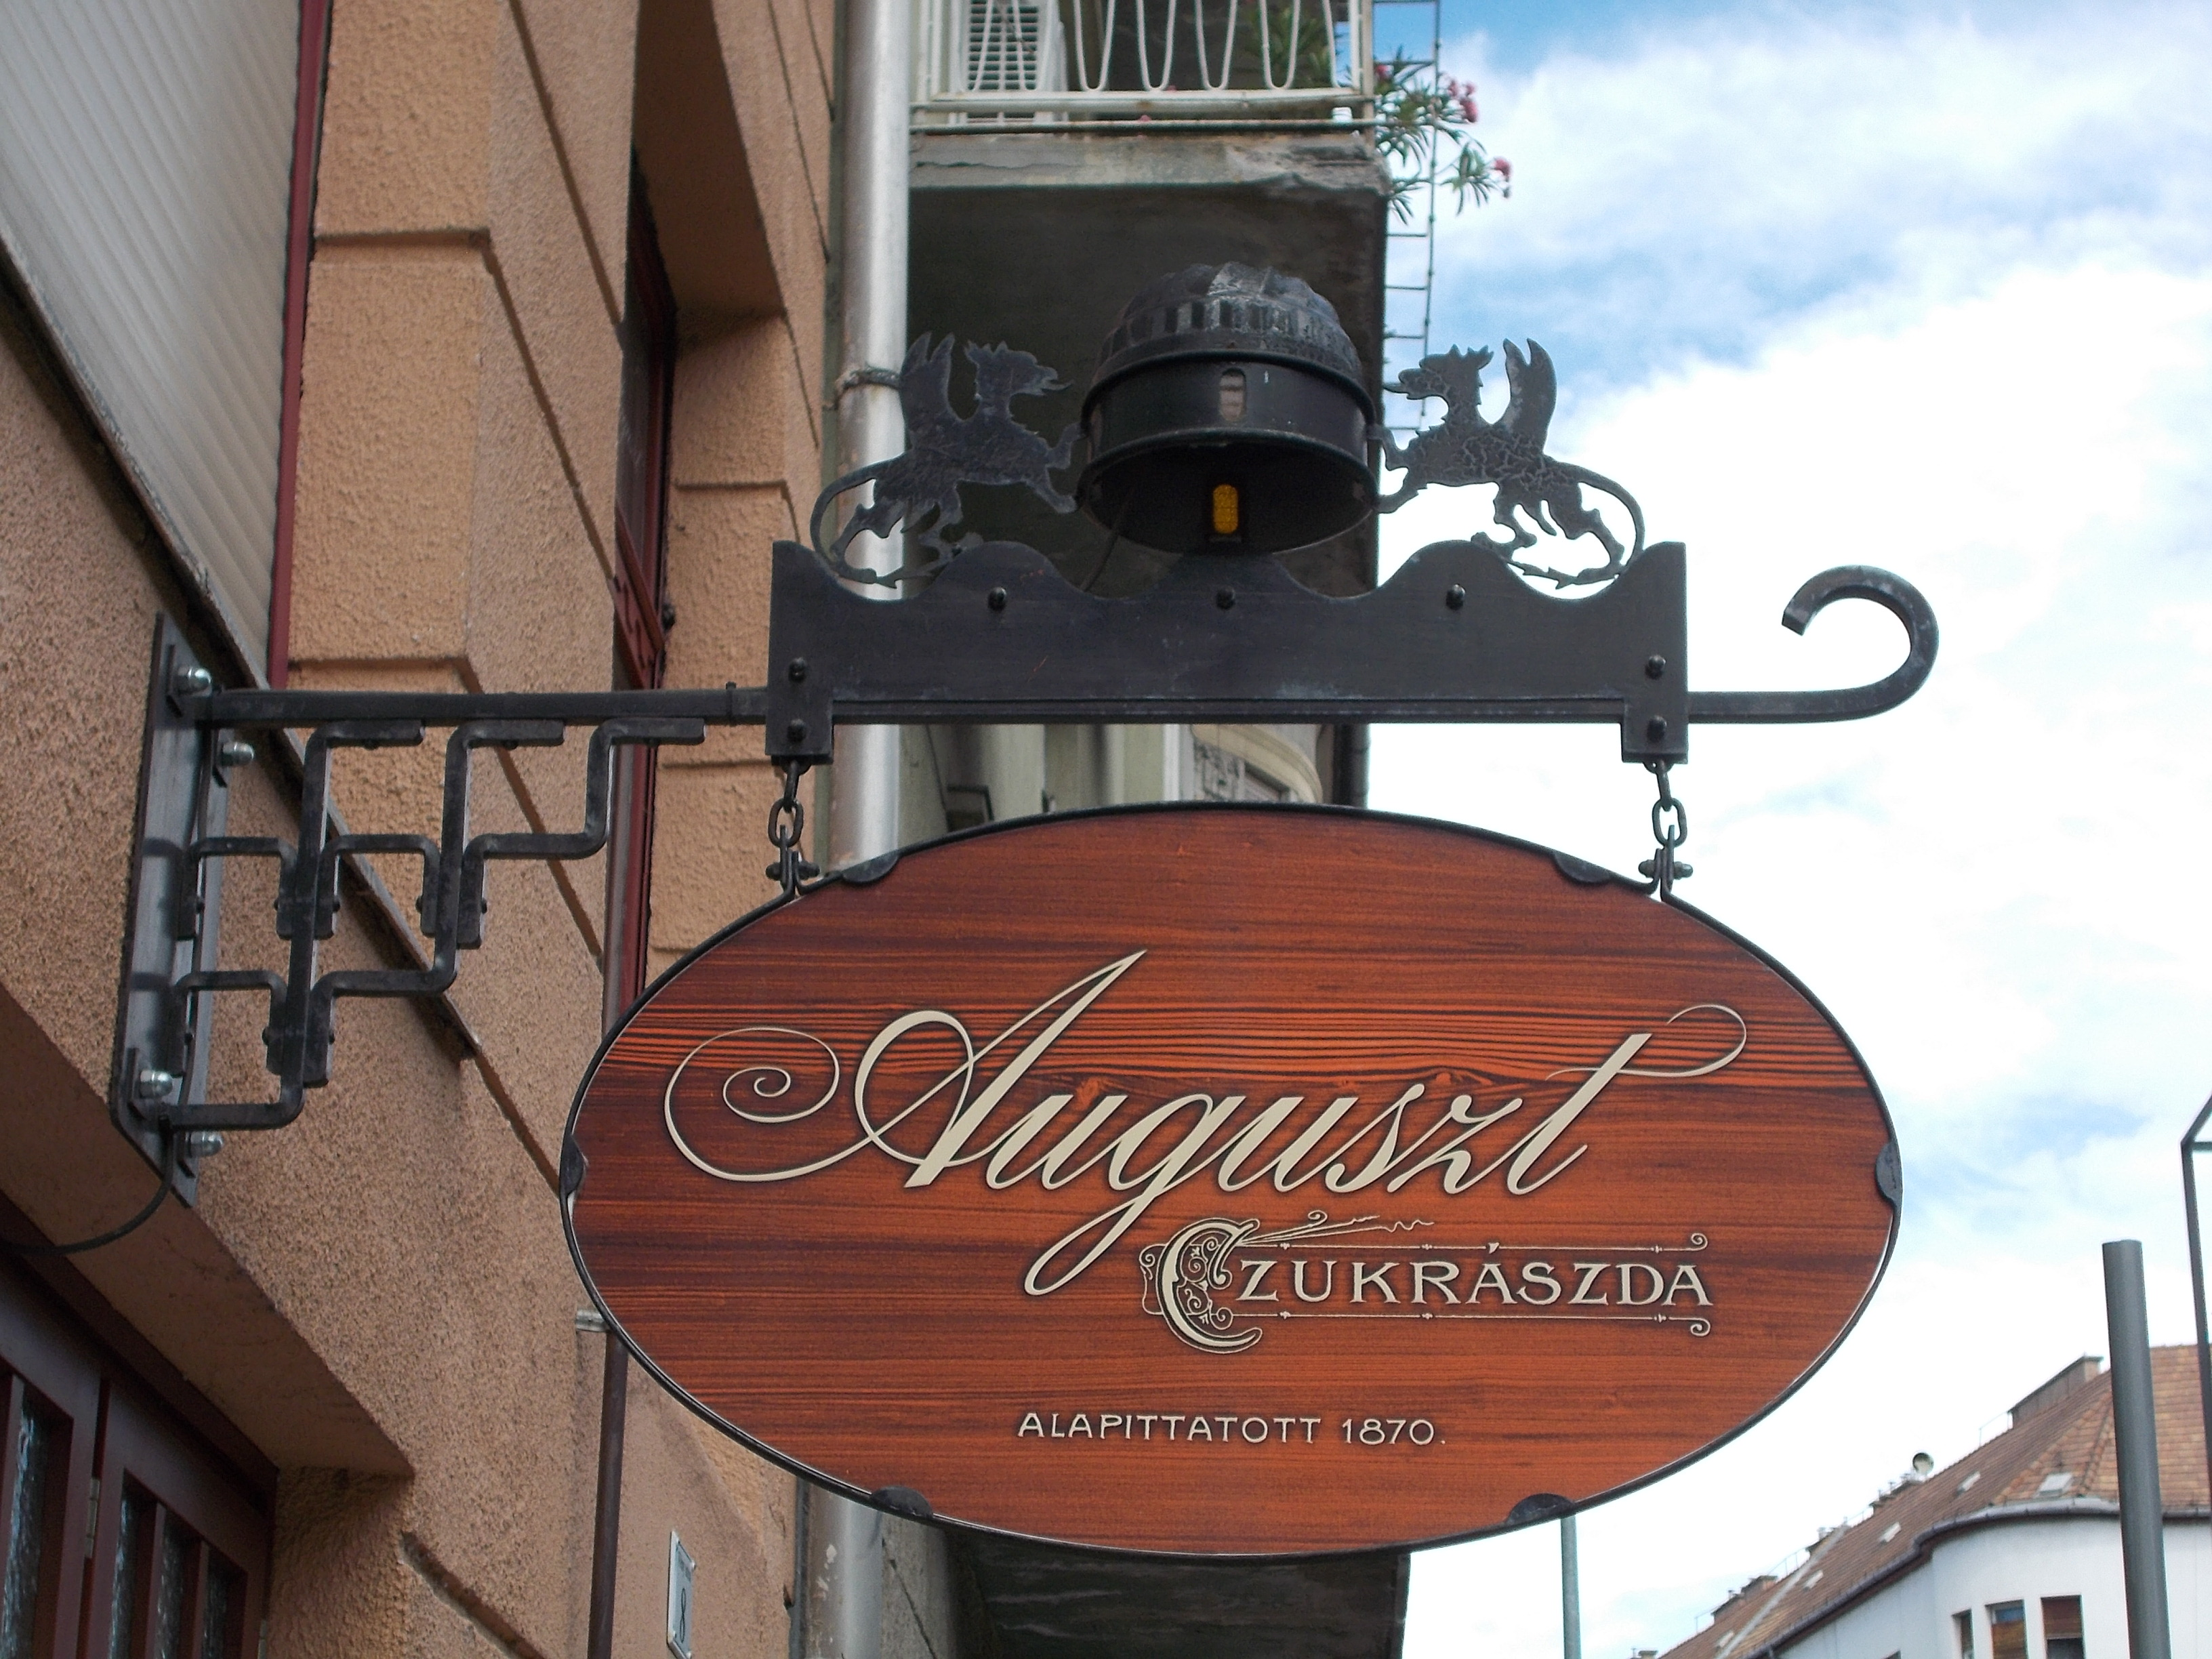 auguszt_pastry_shop_store_signs_n_8_feny_street_budapest_district_ii.JPG